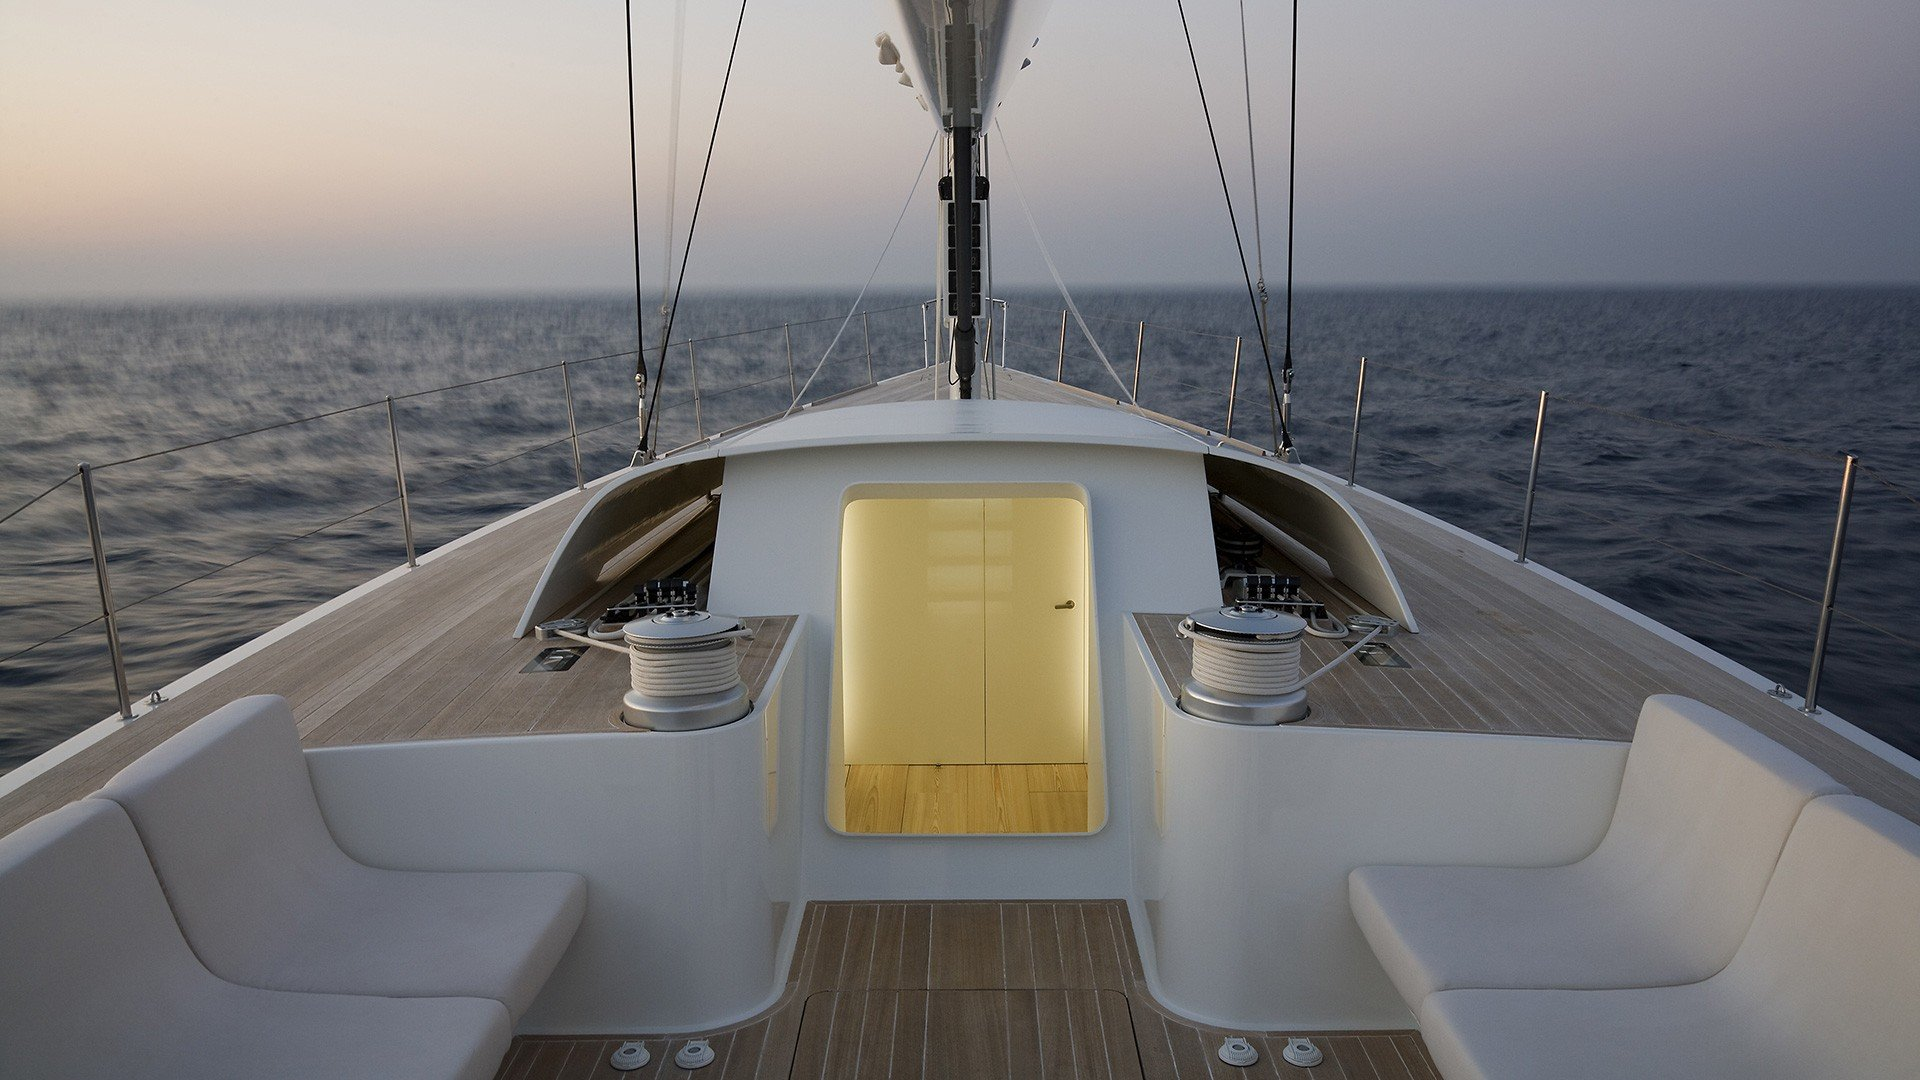 The Luca Brenta Yachts Story